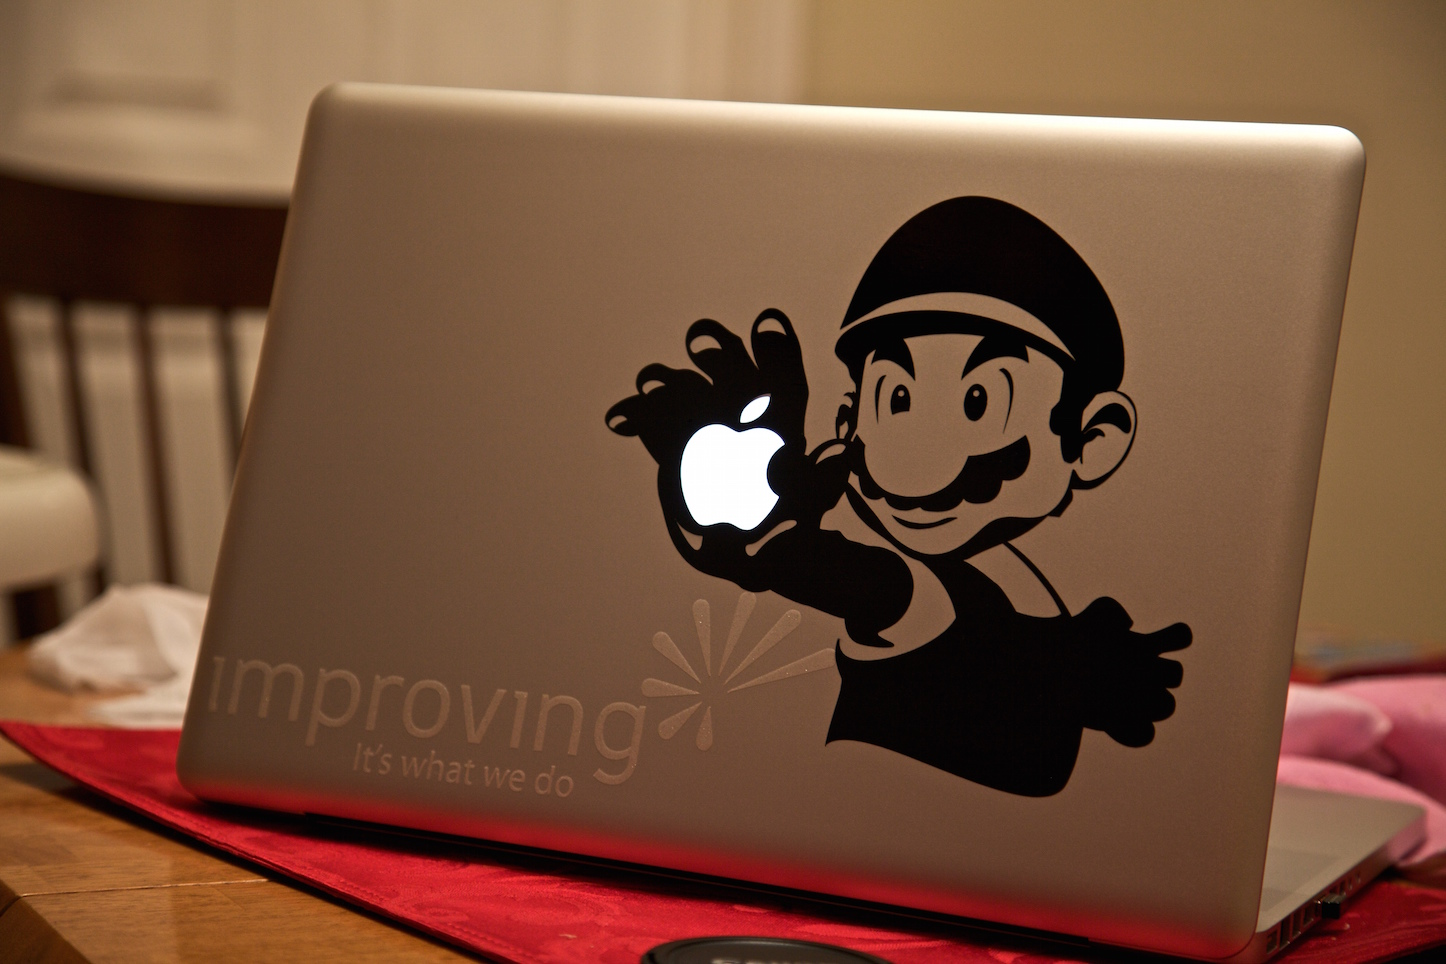 Mario and apple